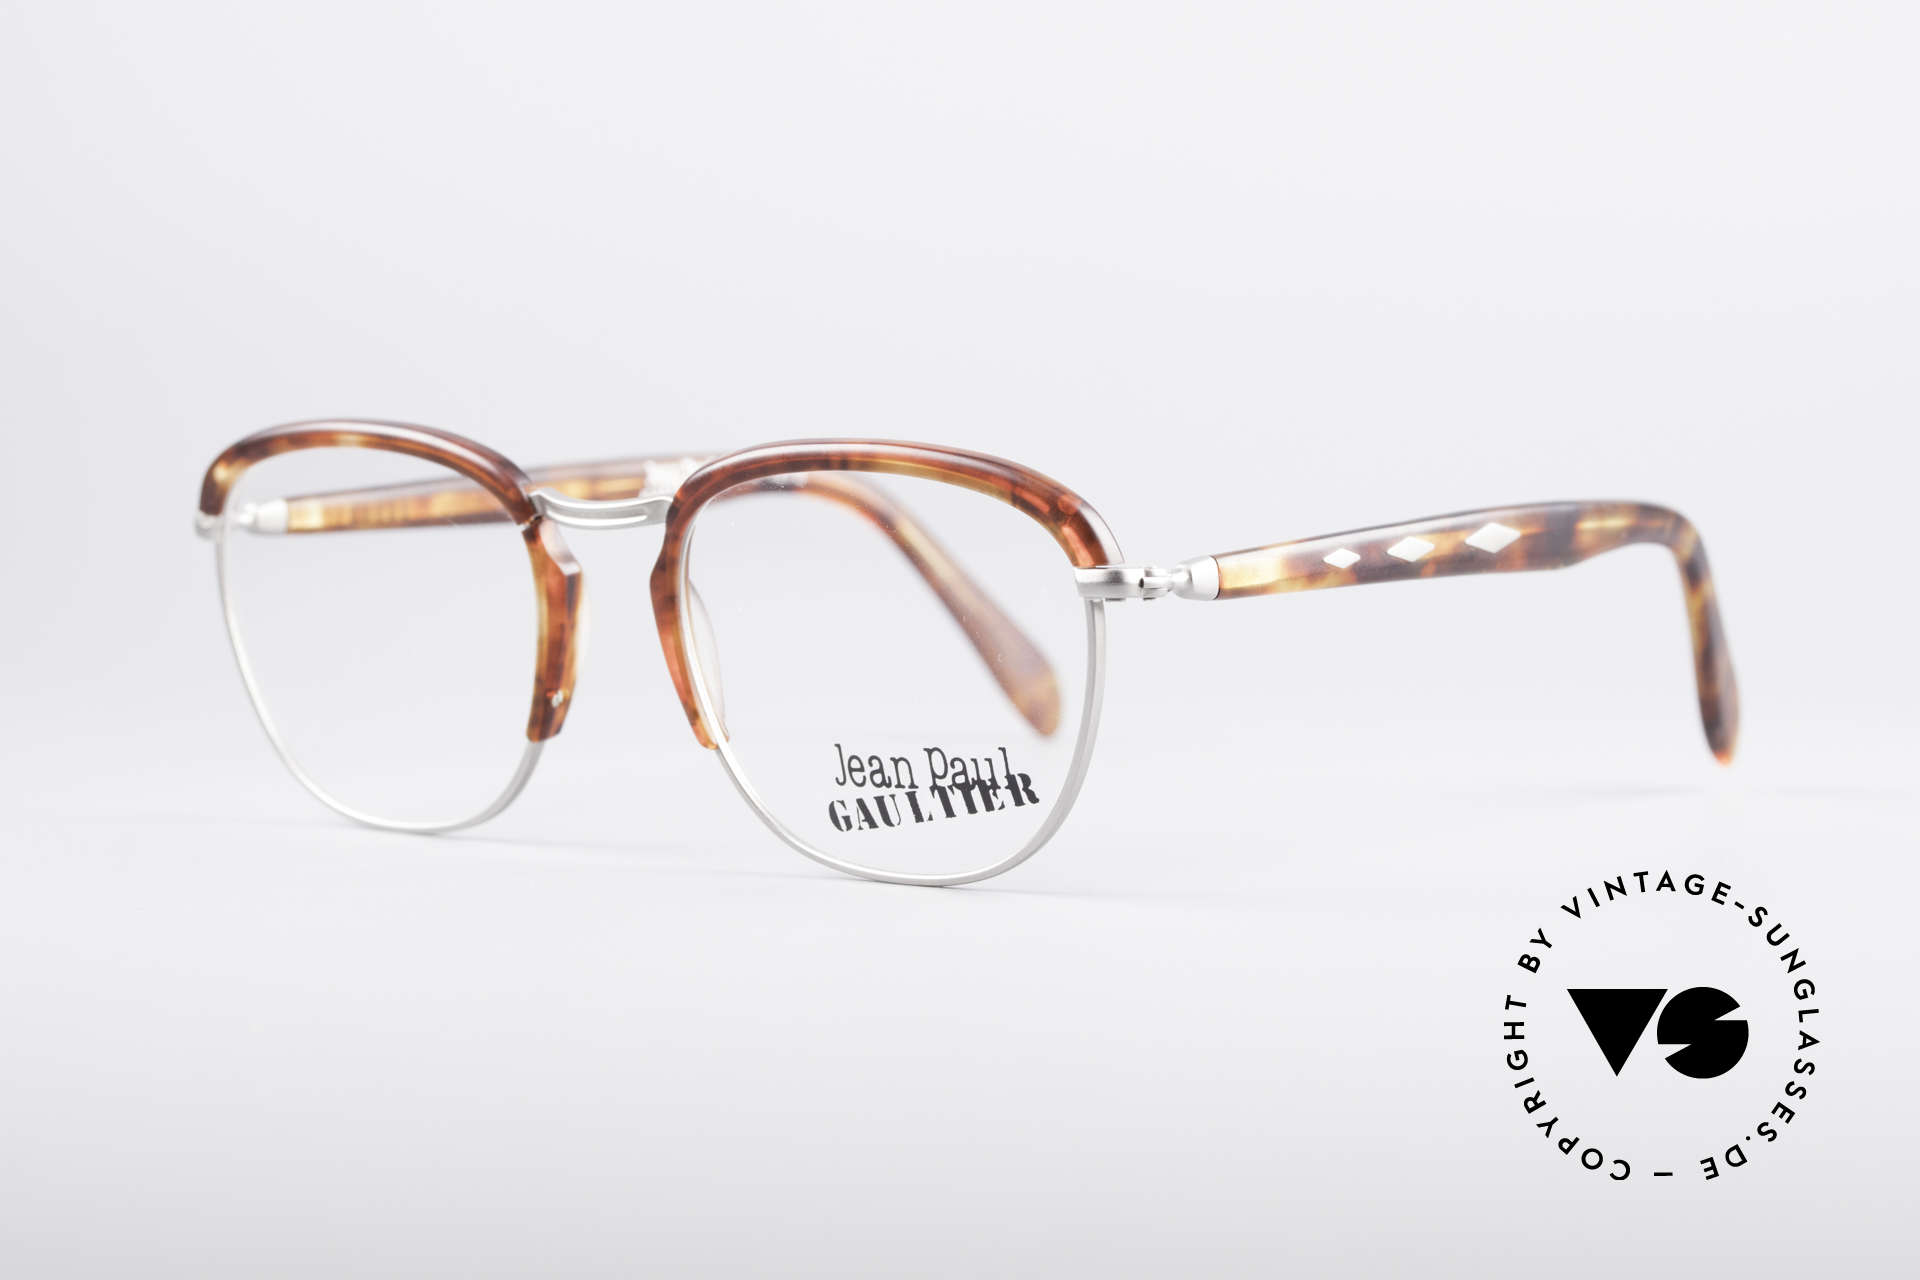 Jean Paul Gaultier 55-1273 Vintage 90's Specs, worth seeing material combination & crafting, Made for Men and Women